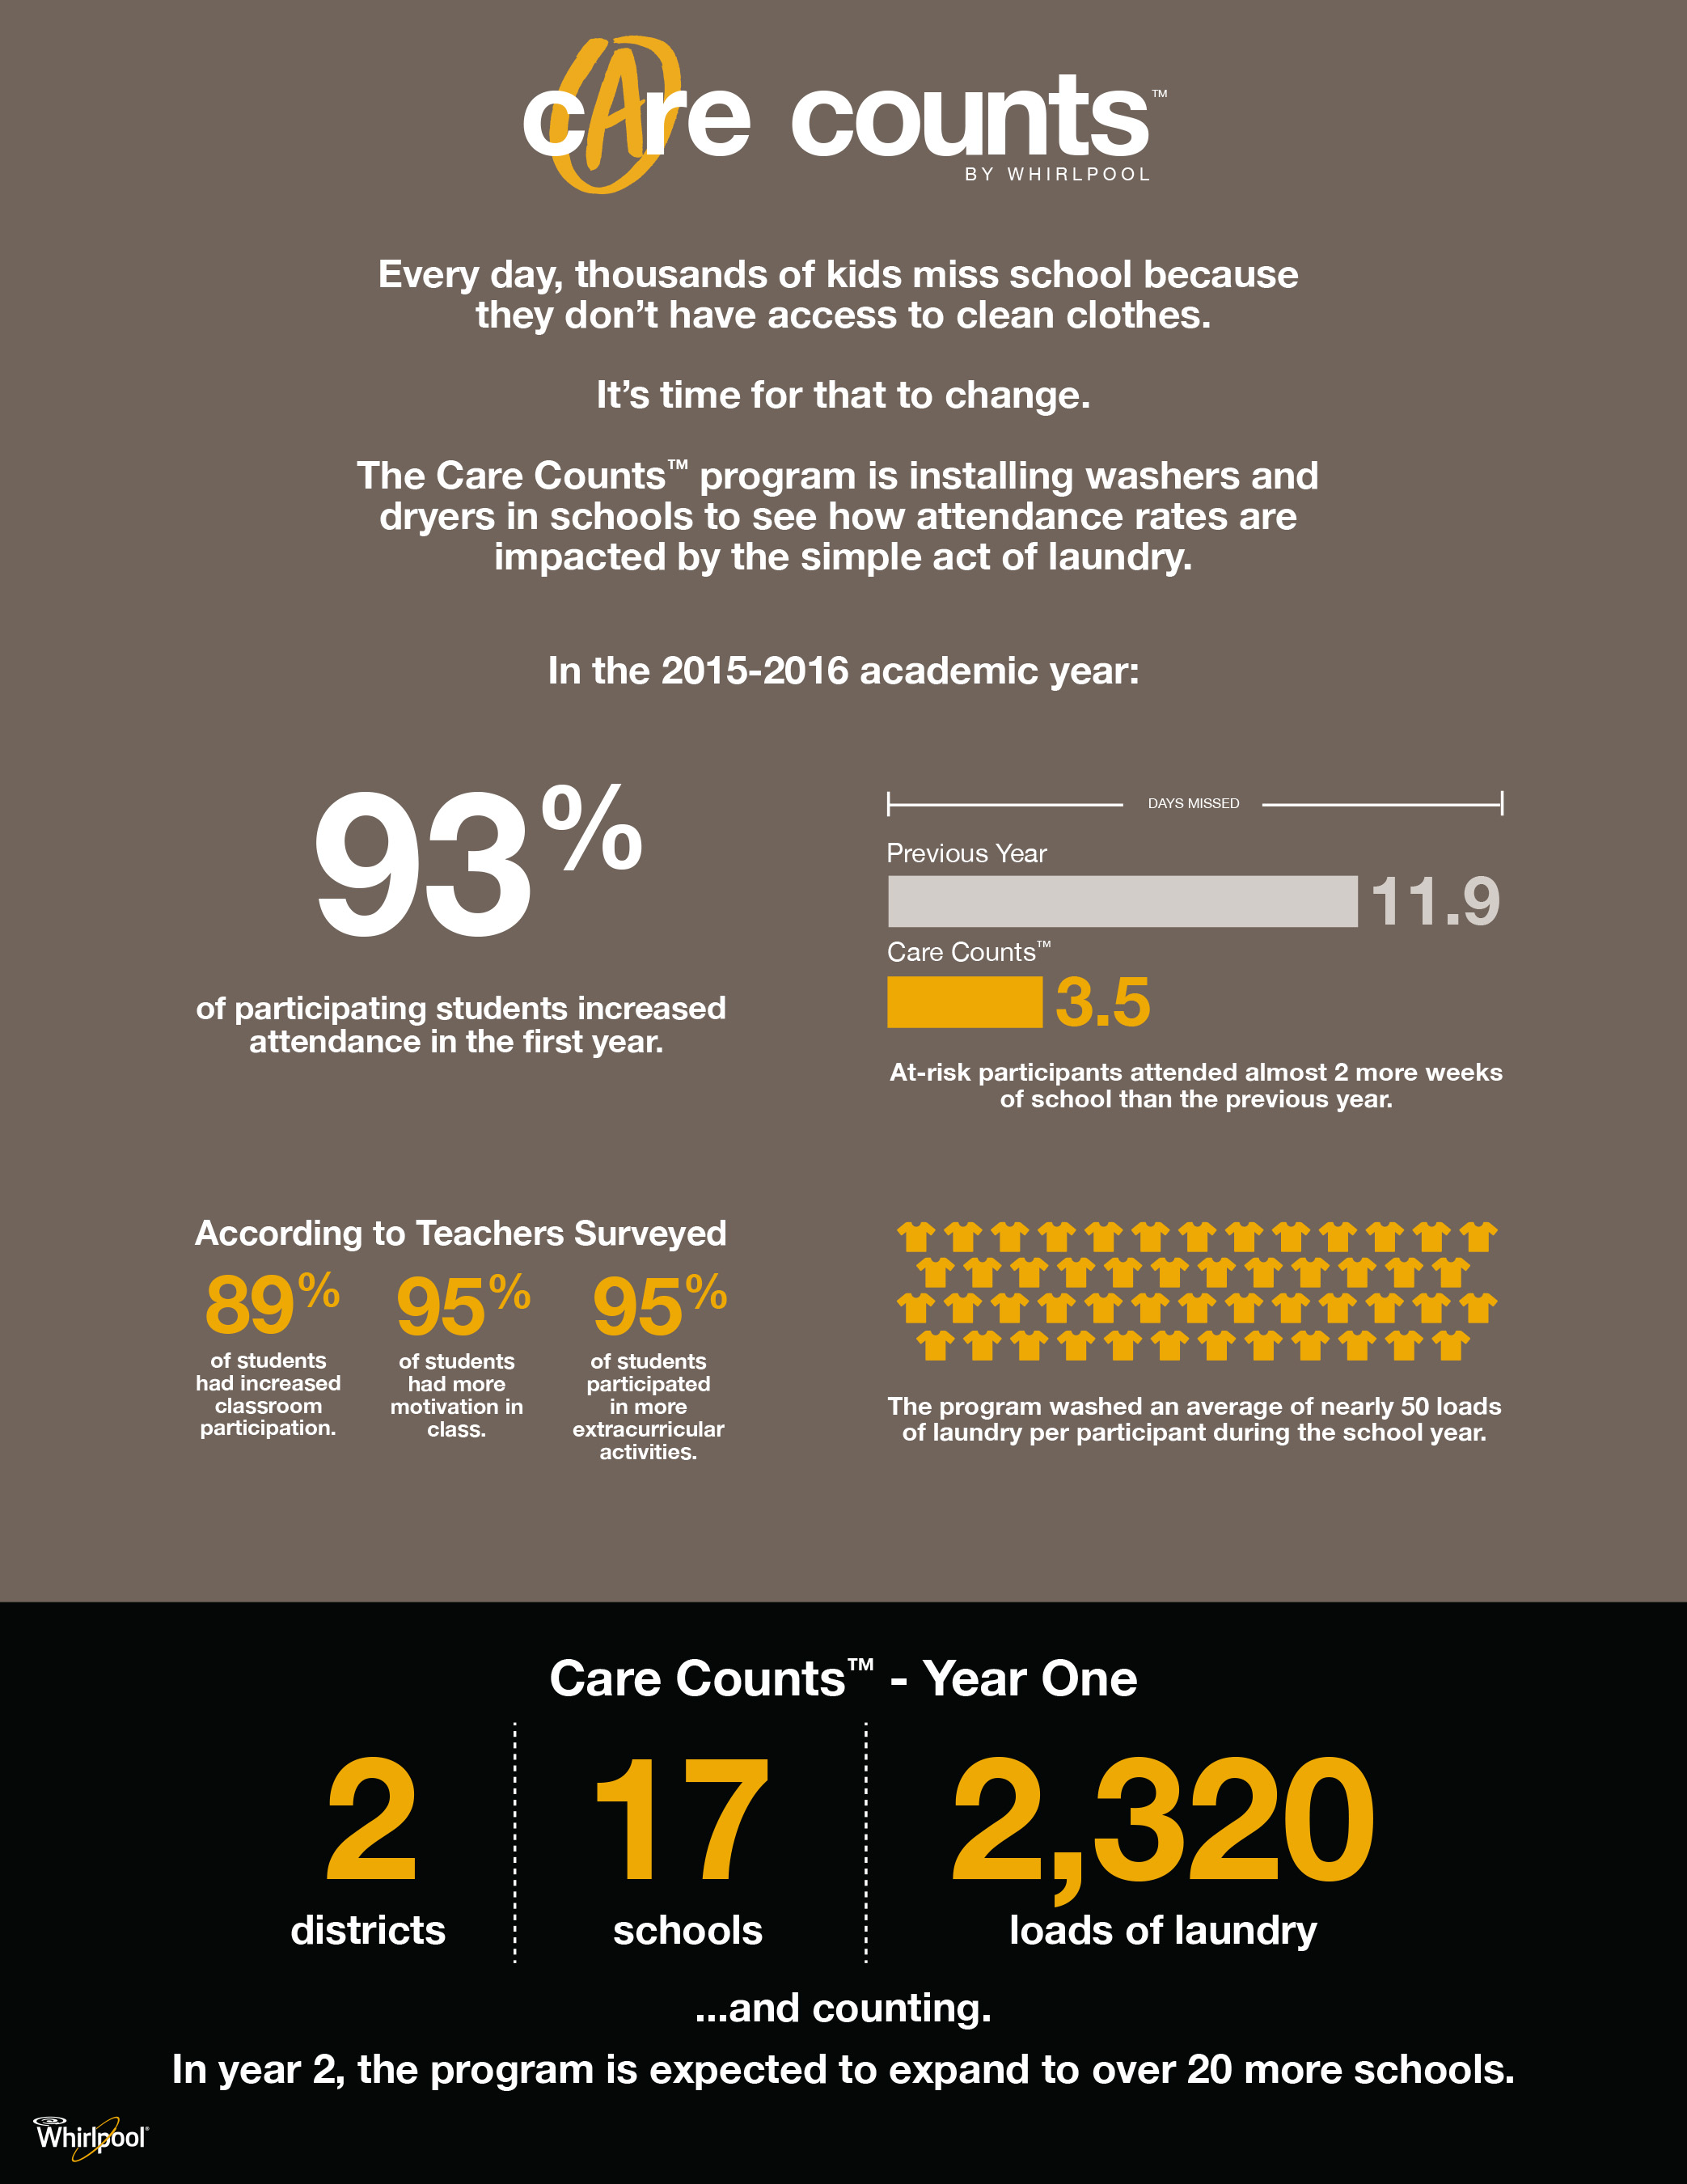 Care Counts™ program saw impactful results in its first year